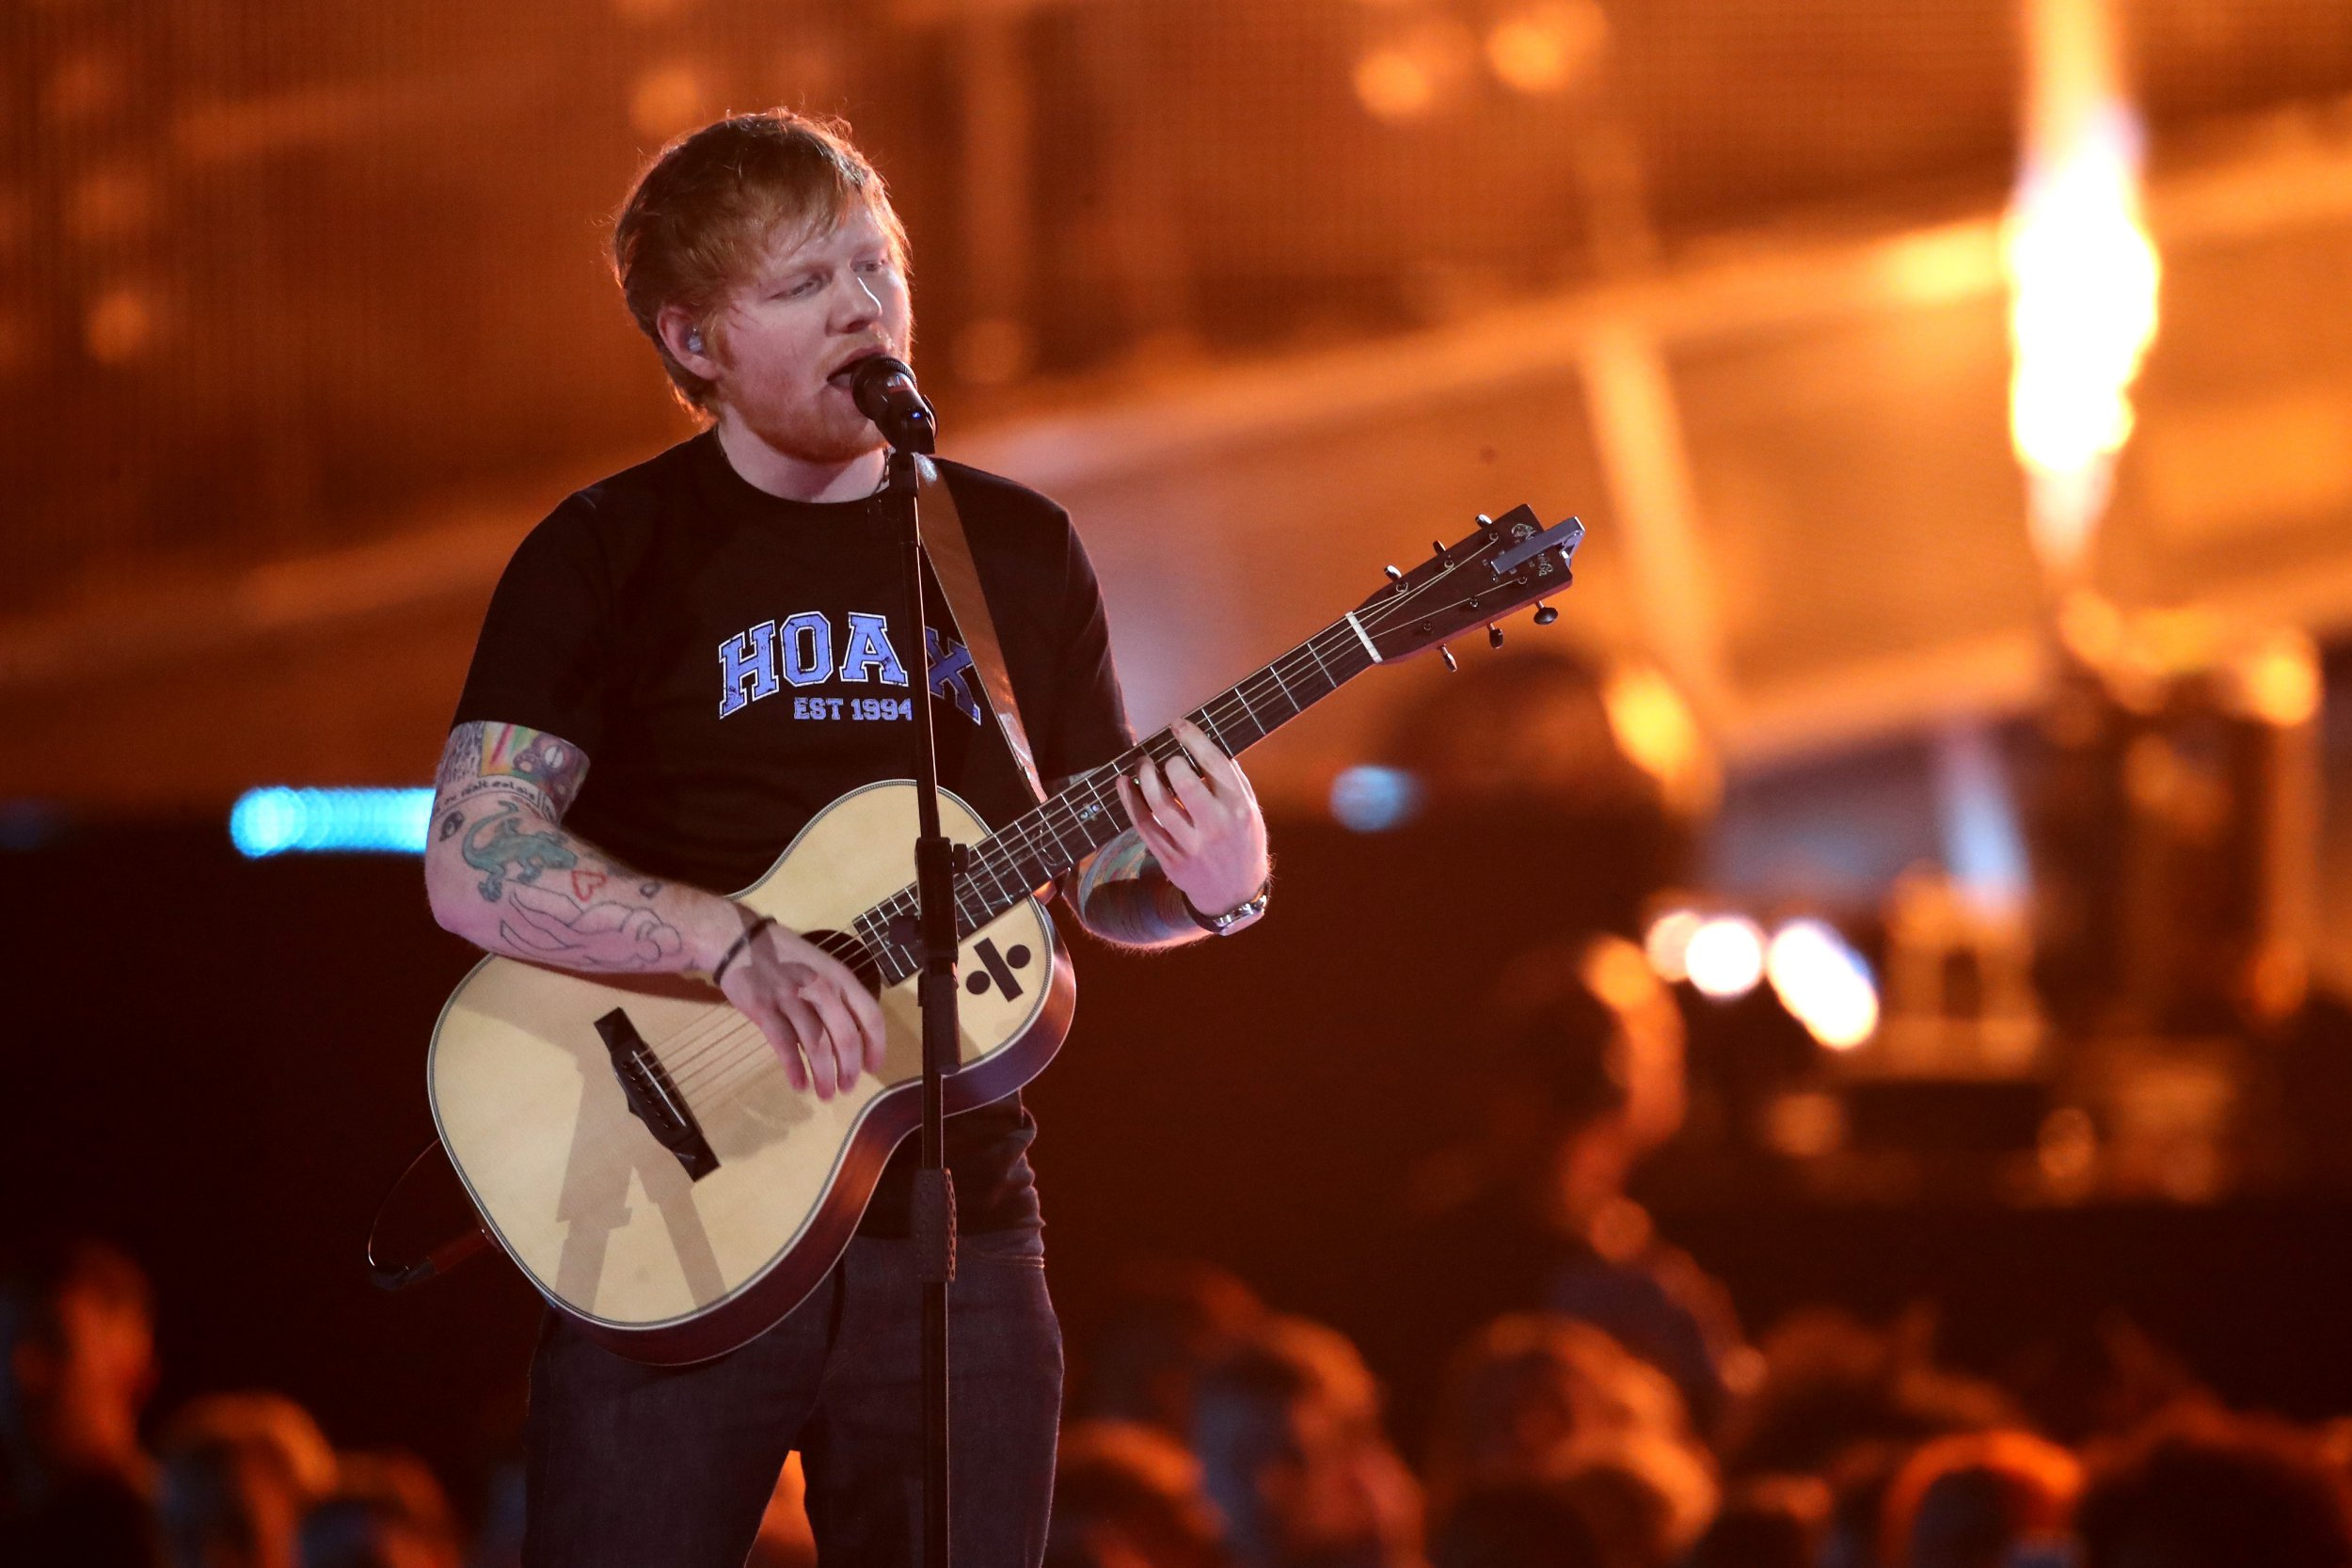 Ed Sheeran review: This one man band deserves all the praise he's been getting